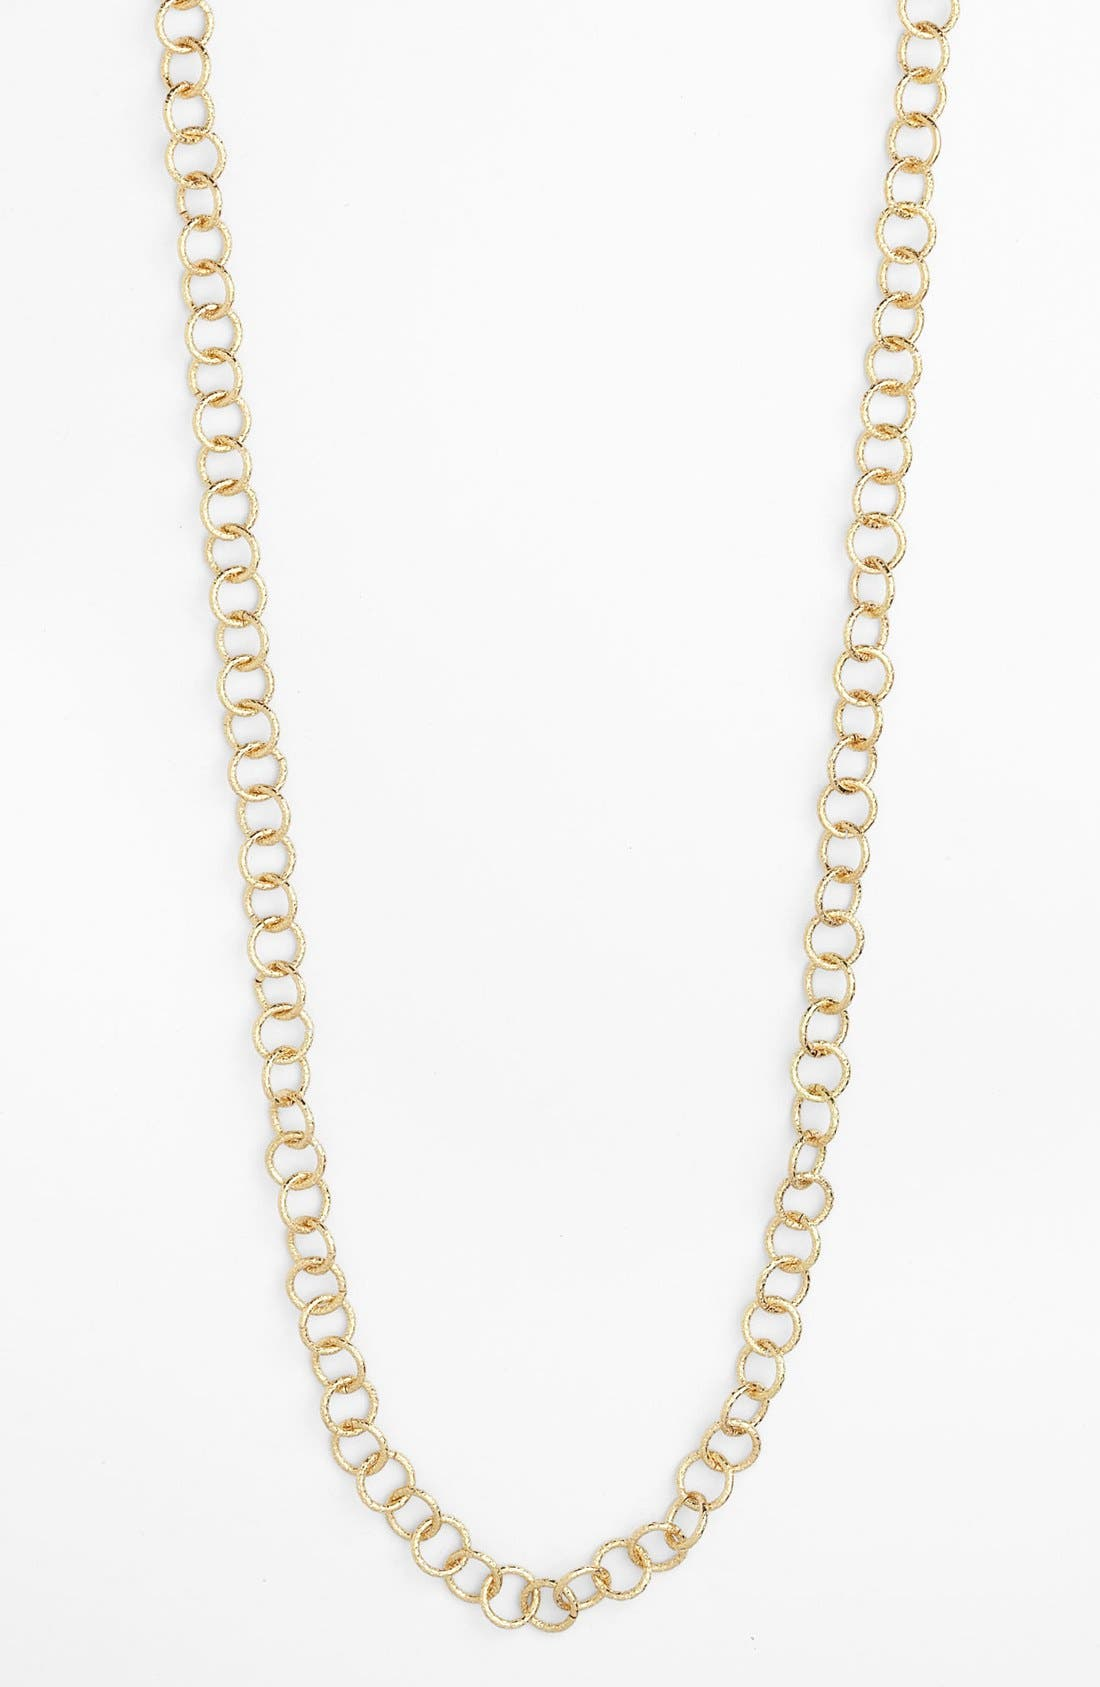 Main Image - Nordstrom Extra Long Link Necklace